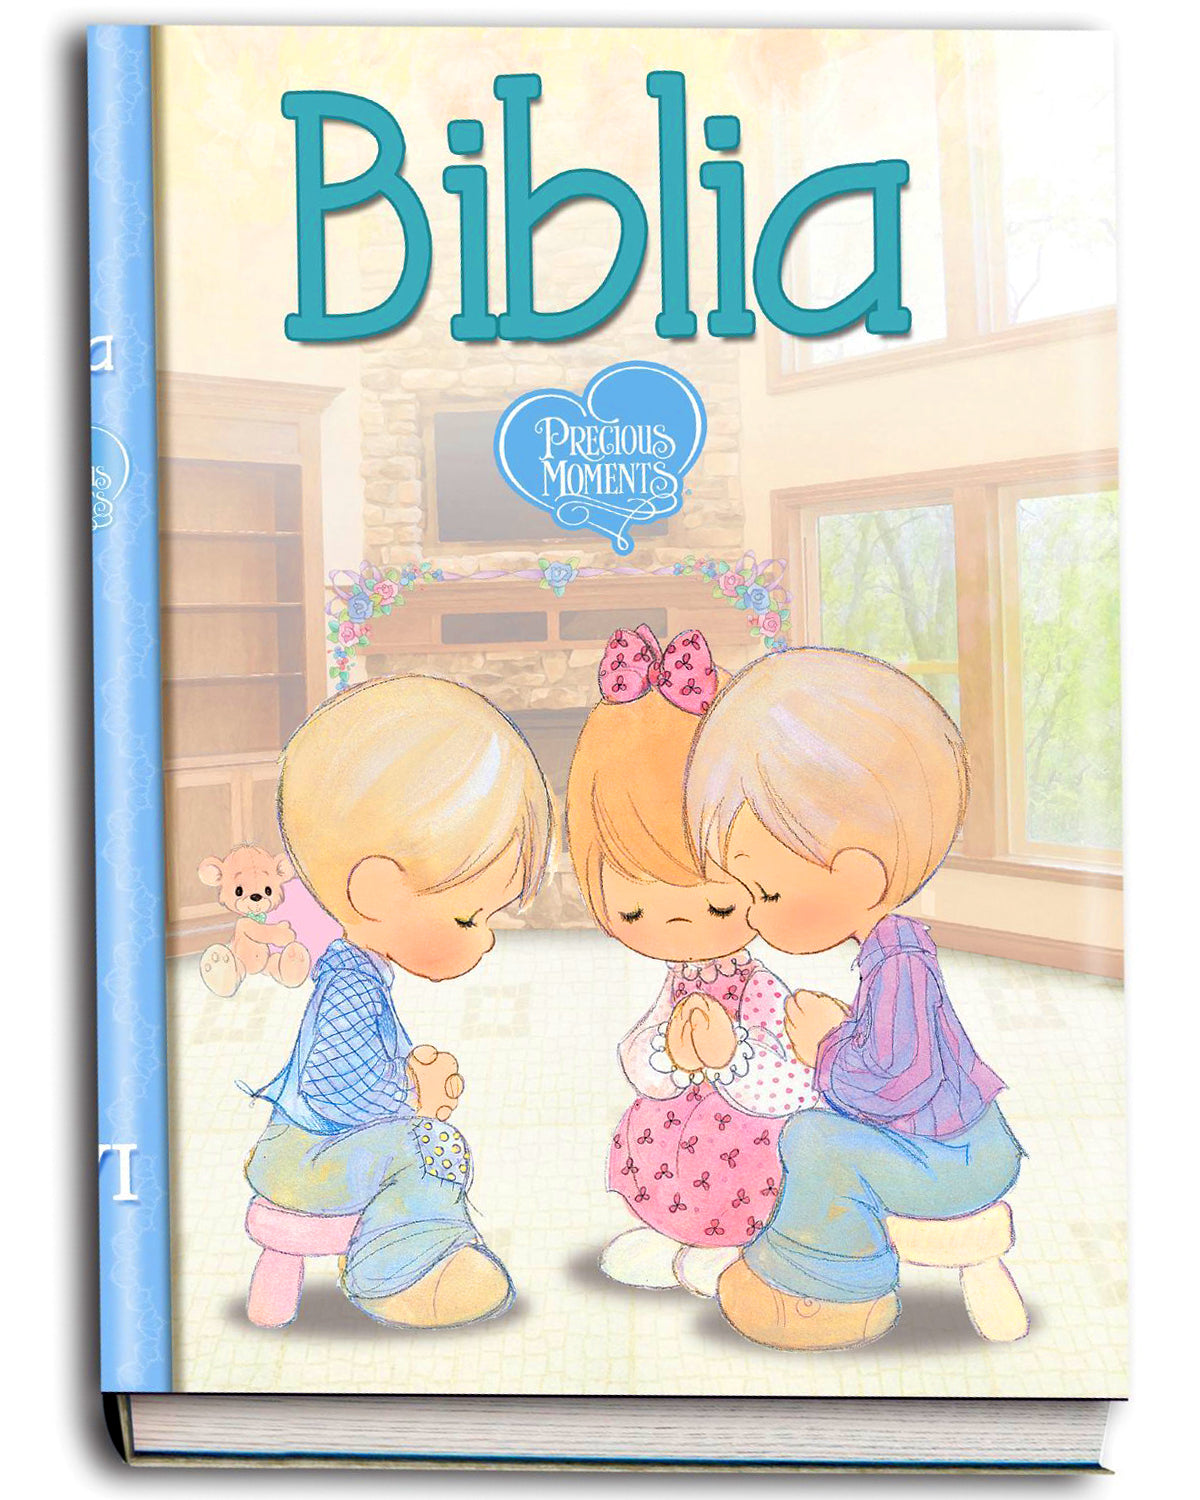 Biblia NVI Precious Moments Manual Tapa Dura